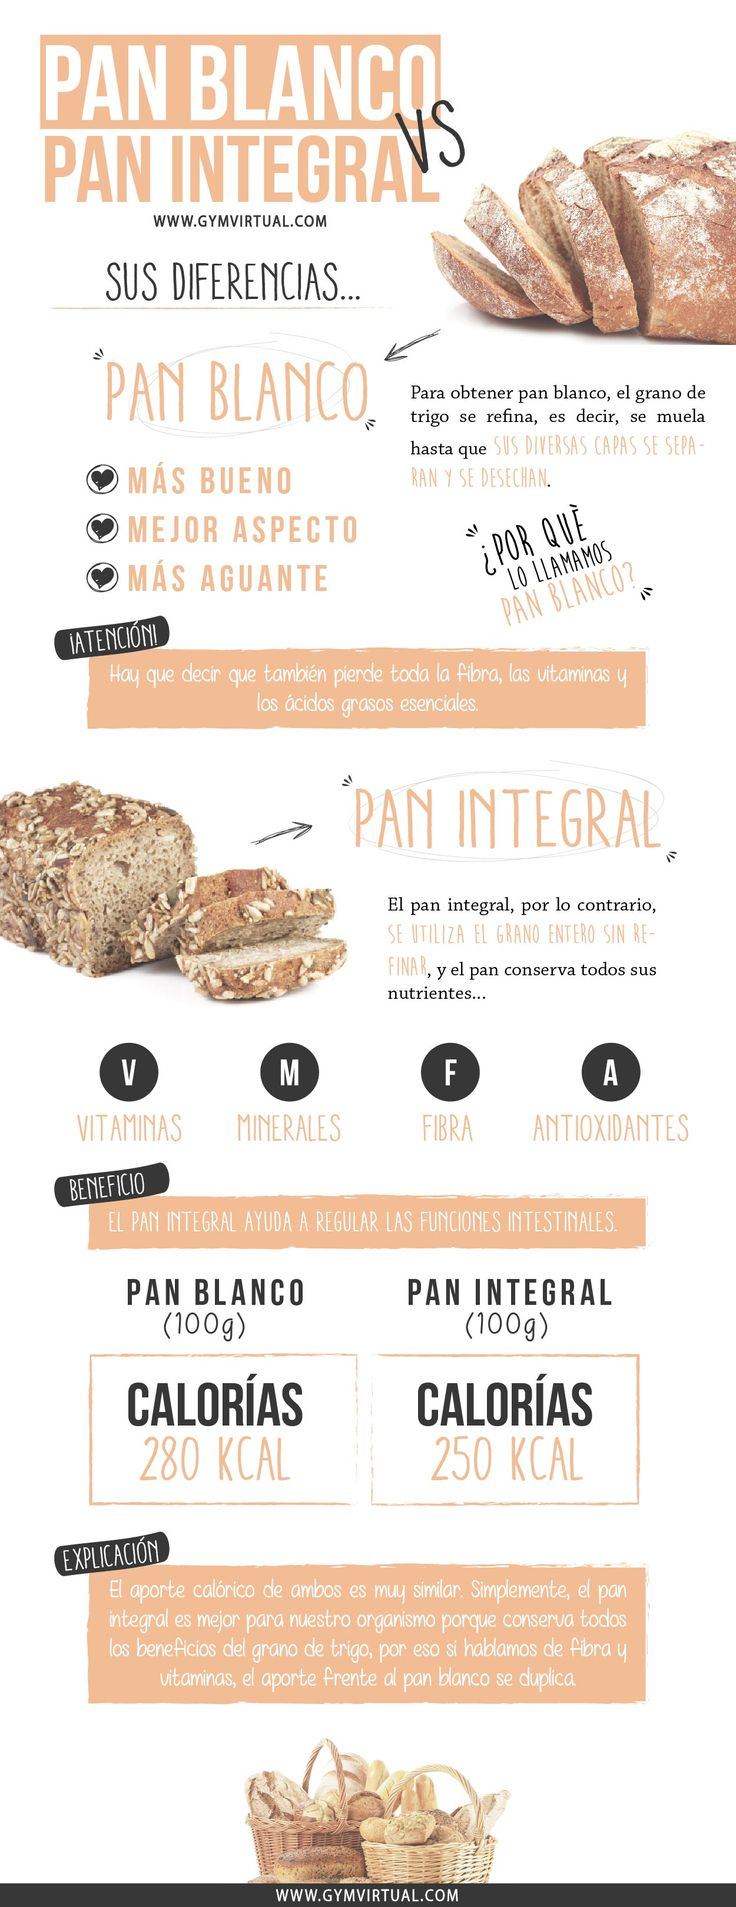 PAN BLANCO VS INTEGRAL #salud #beneficios